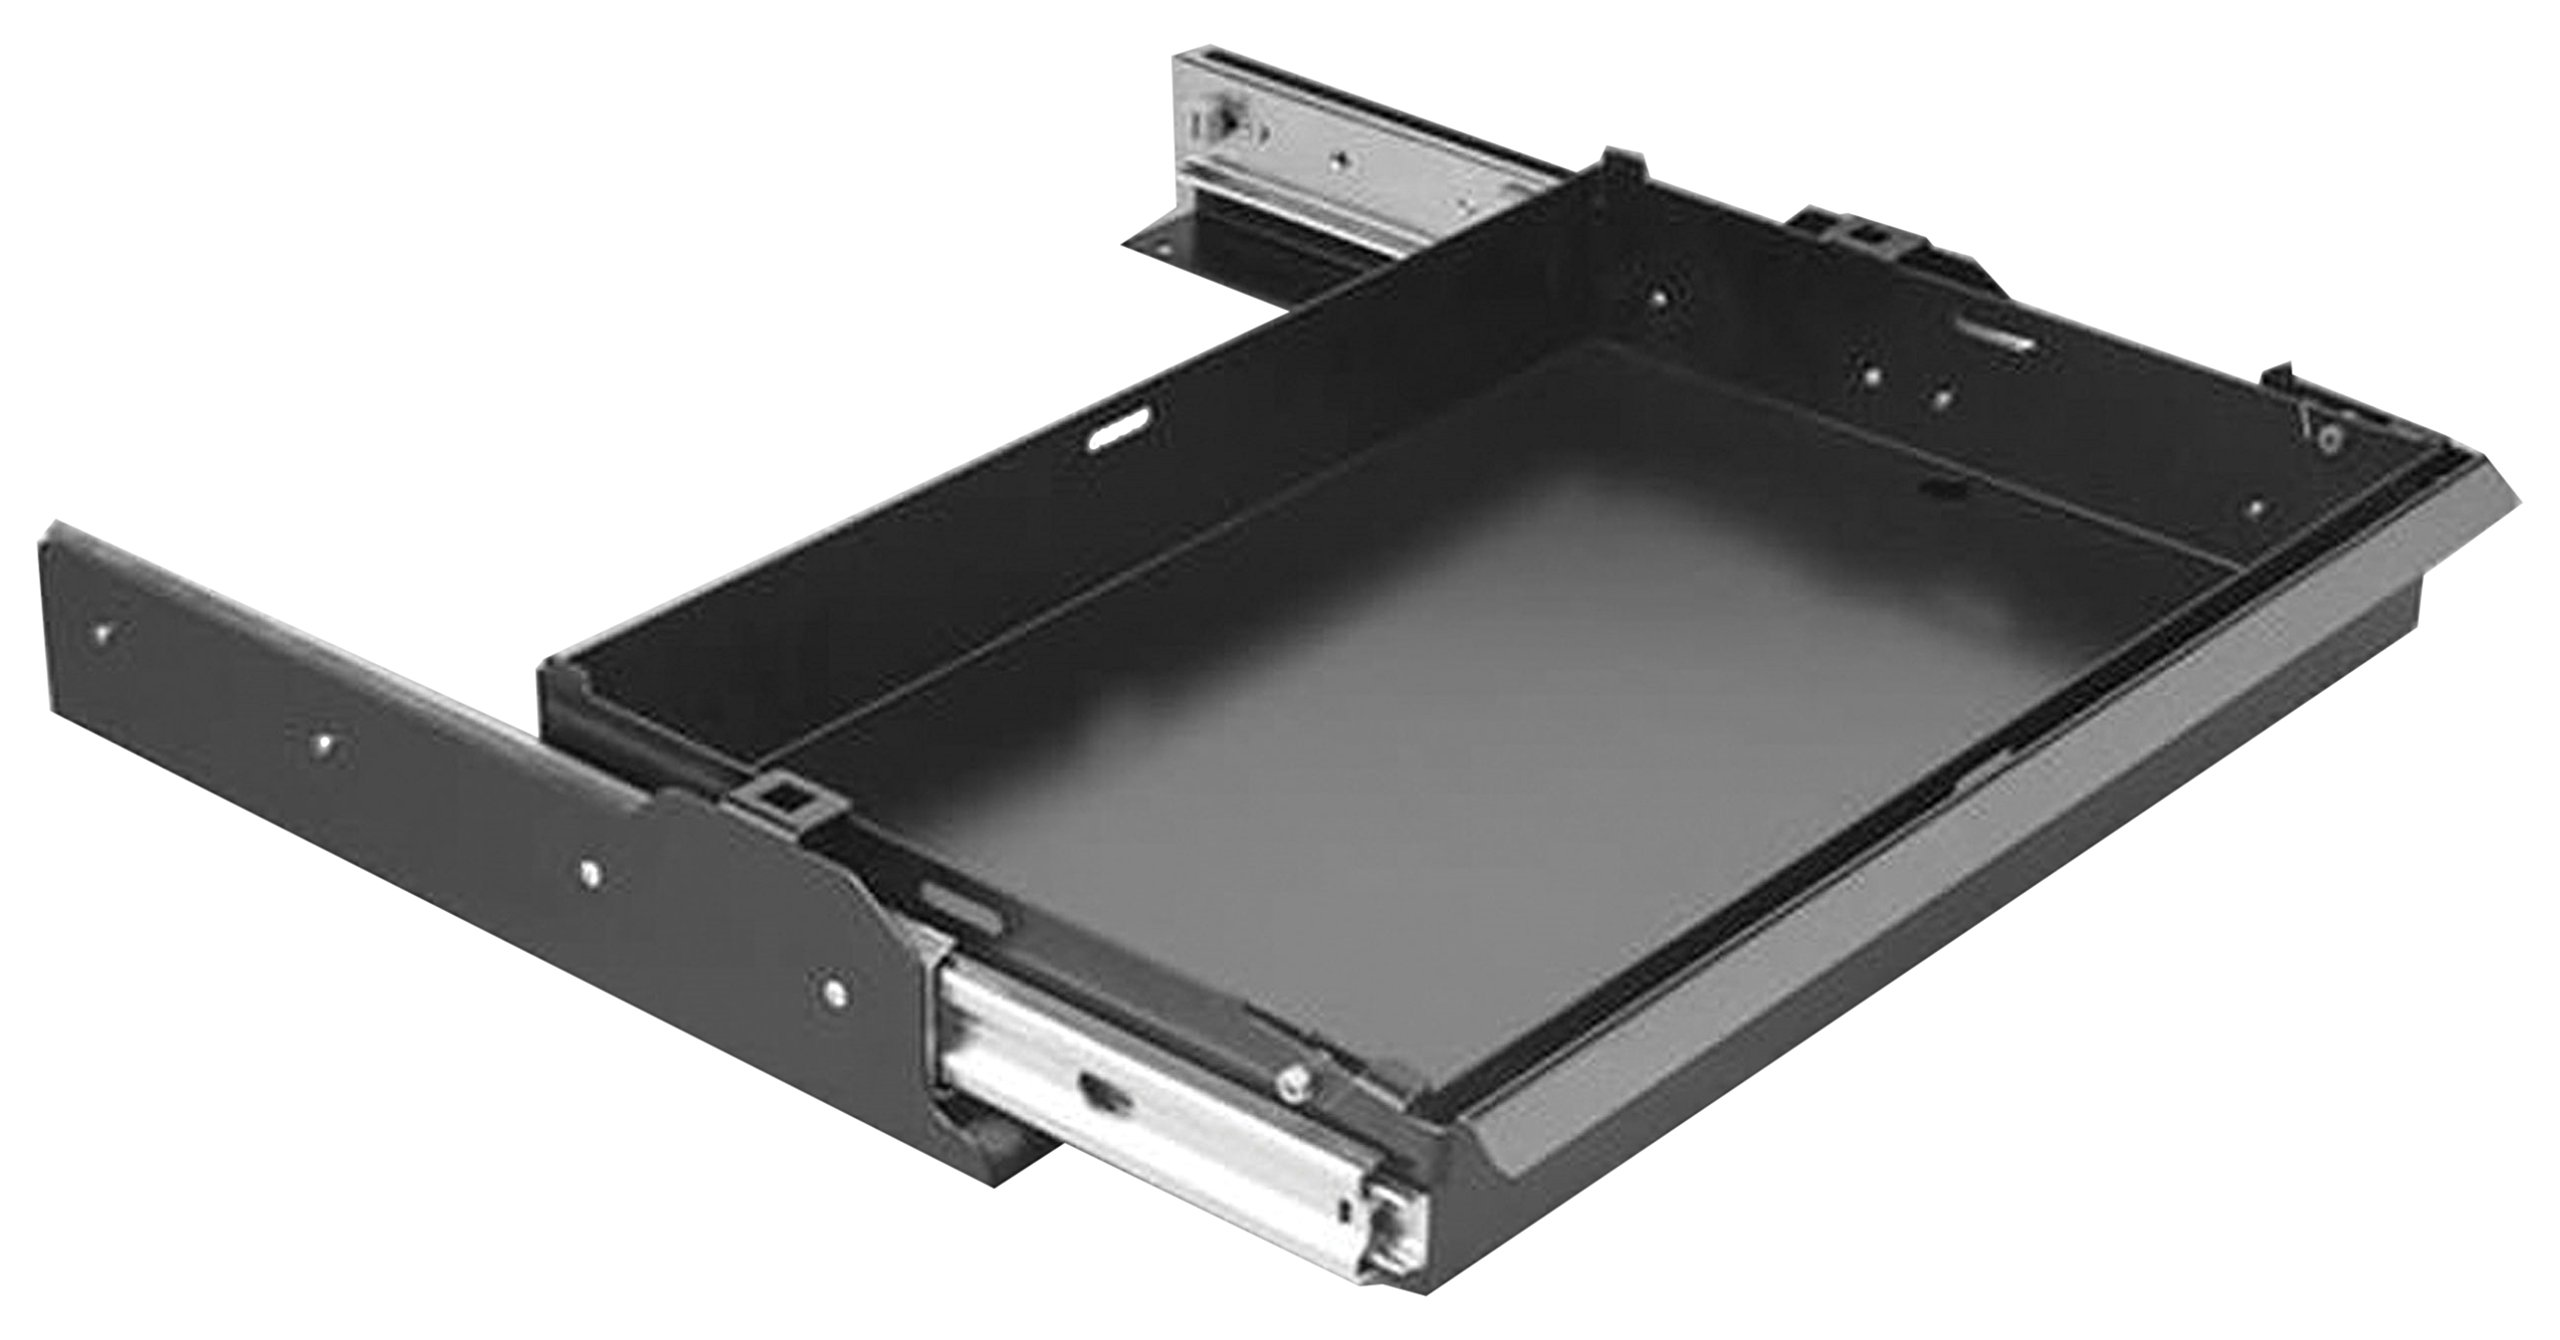 MORryde MORyde SP60-044 Sliding Battery Tray - 24.25'' x 24.15'' x 2.75'' by MORryde